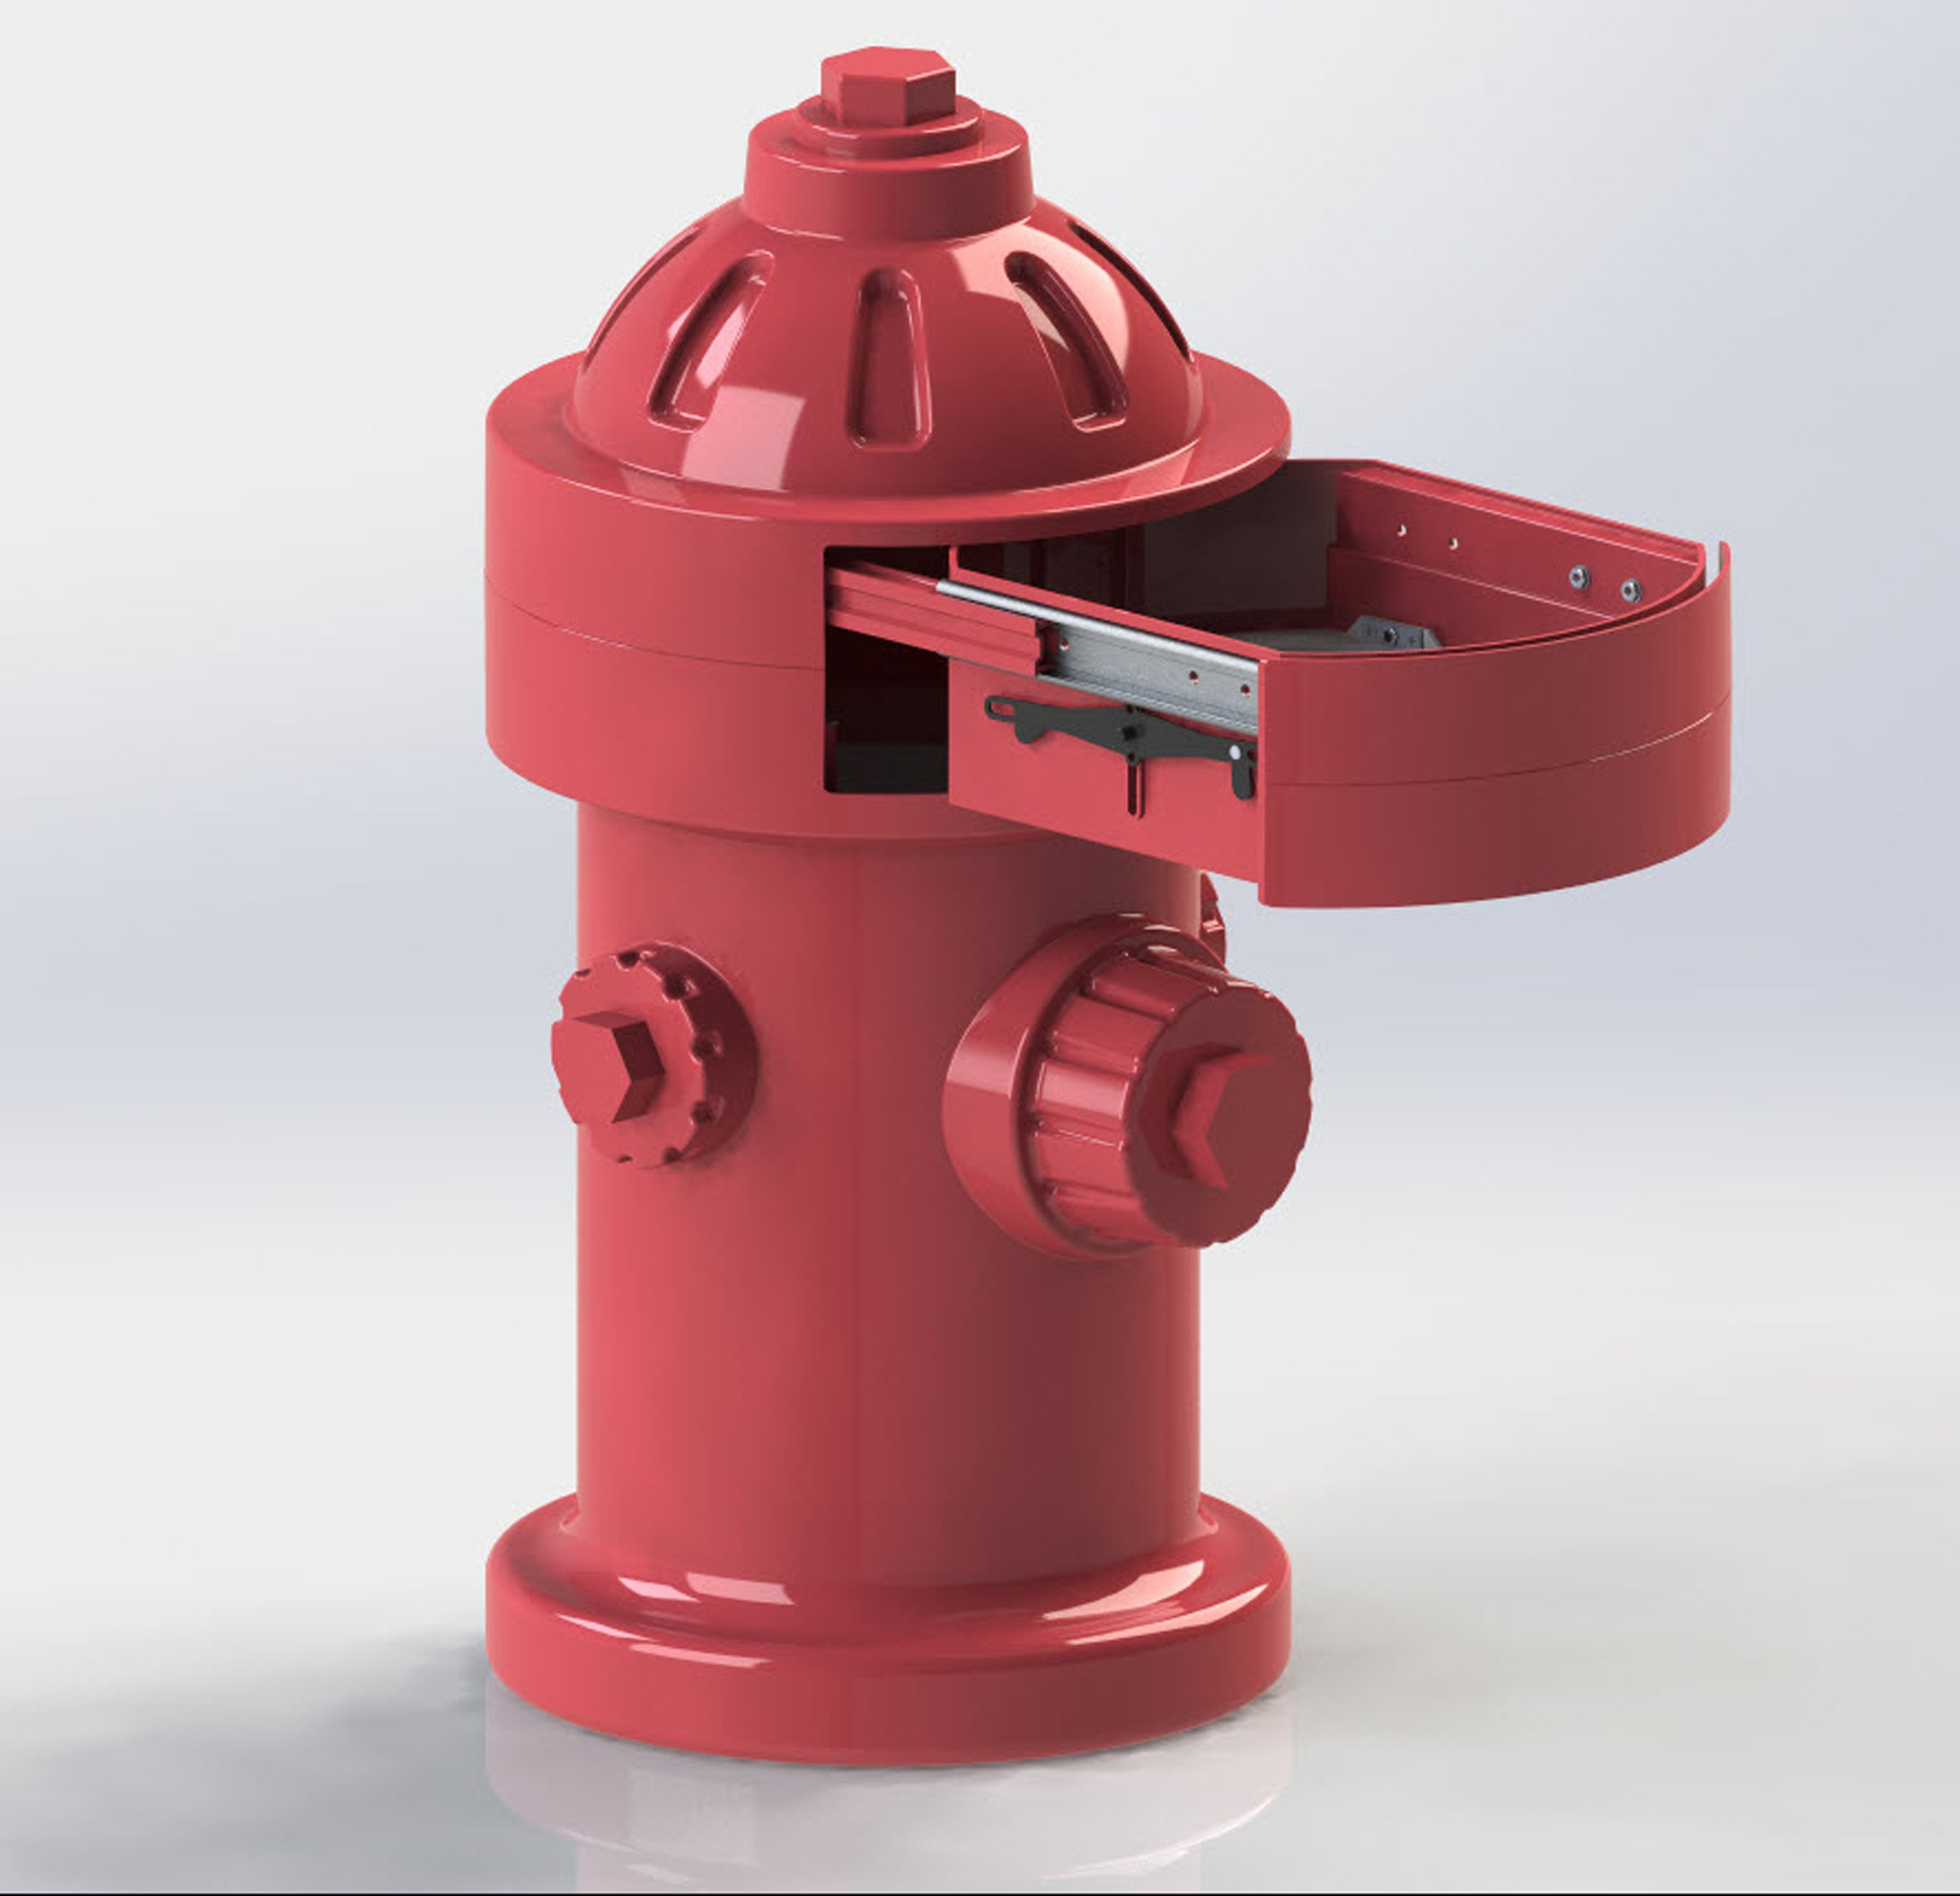 Doggy Fire Hydrant CAD design-3D Rendering